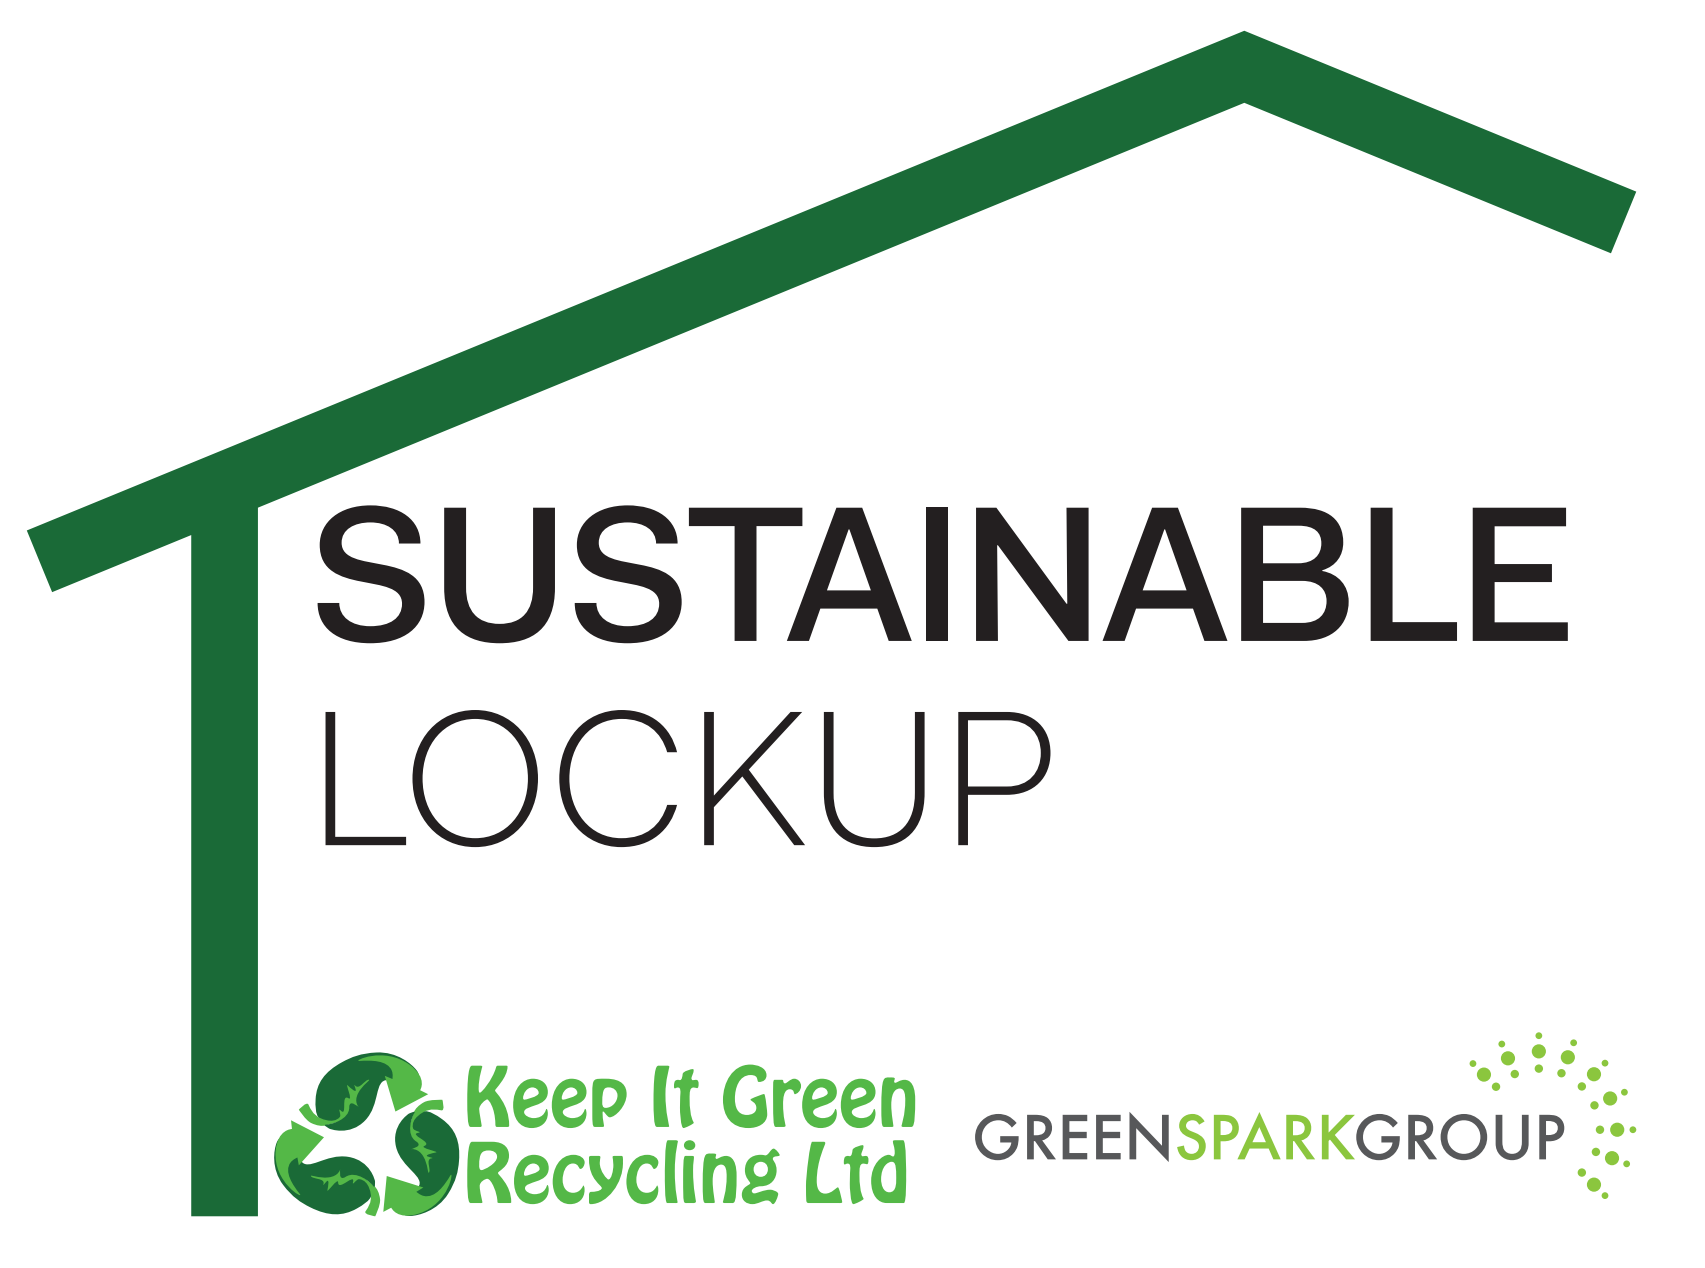 Sustainable Lockup